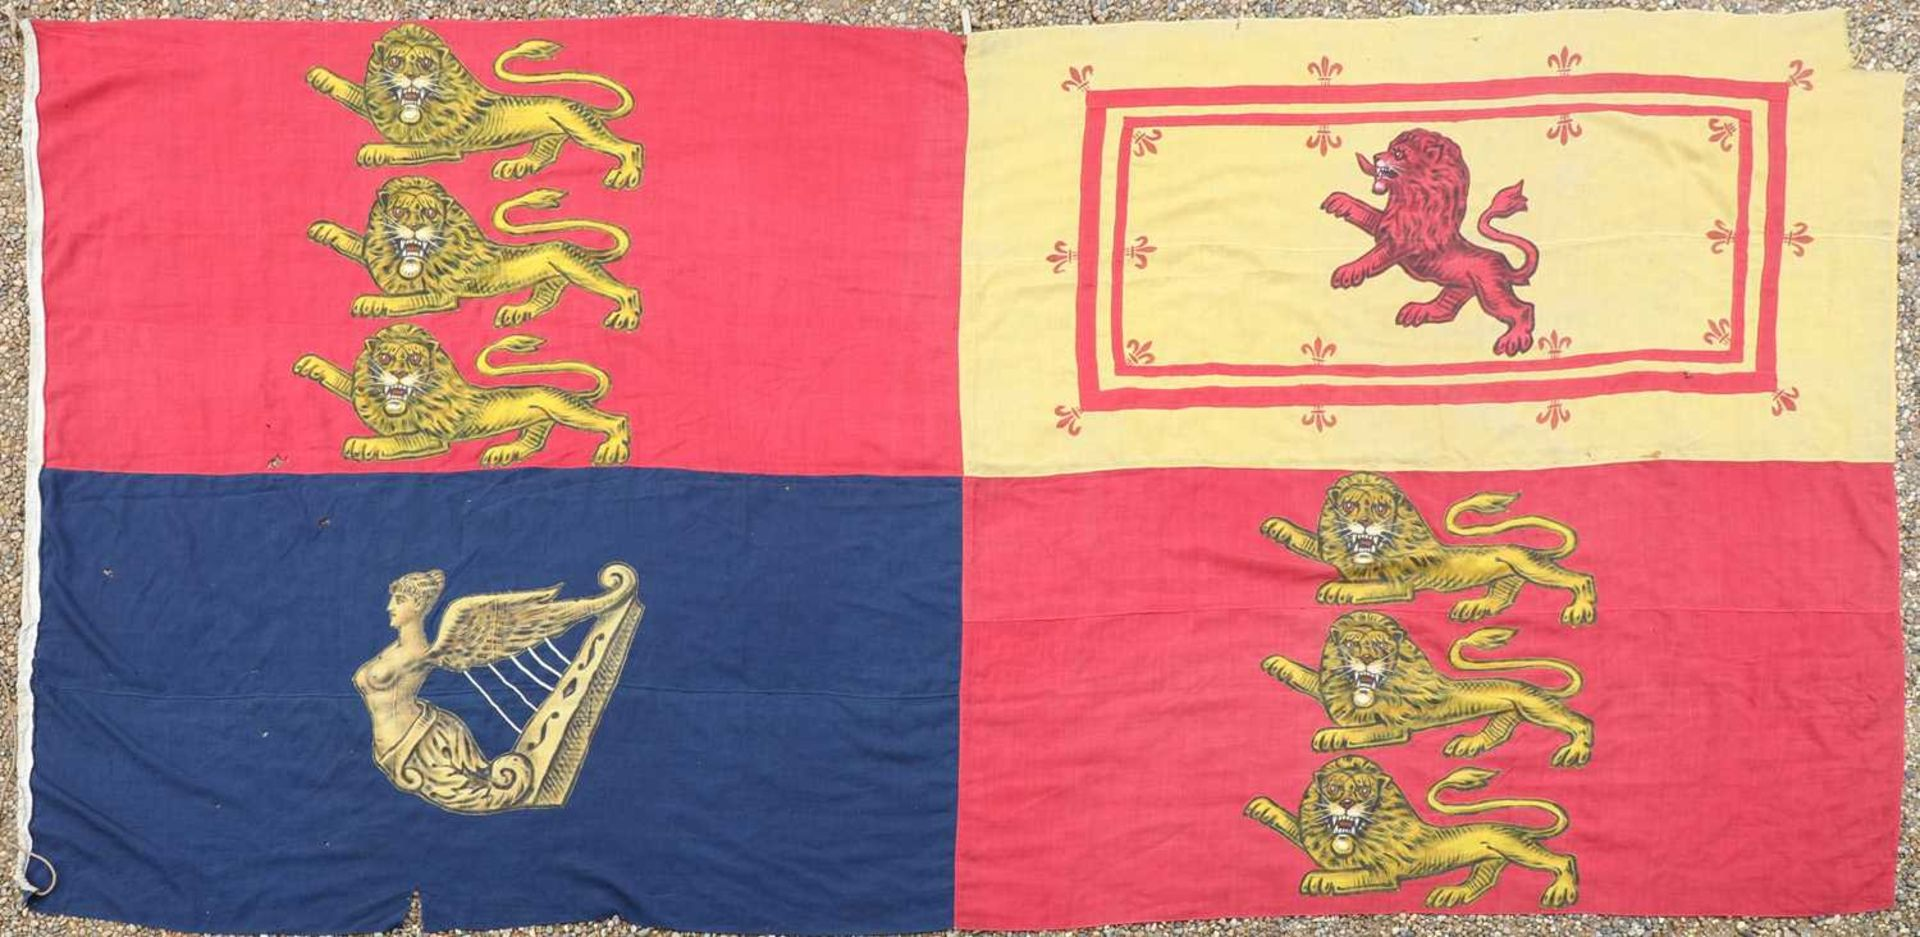 A RARE ROYAL STANDARD FLAG, - Image 2 of 2